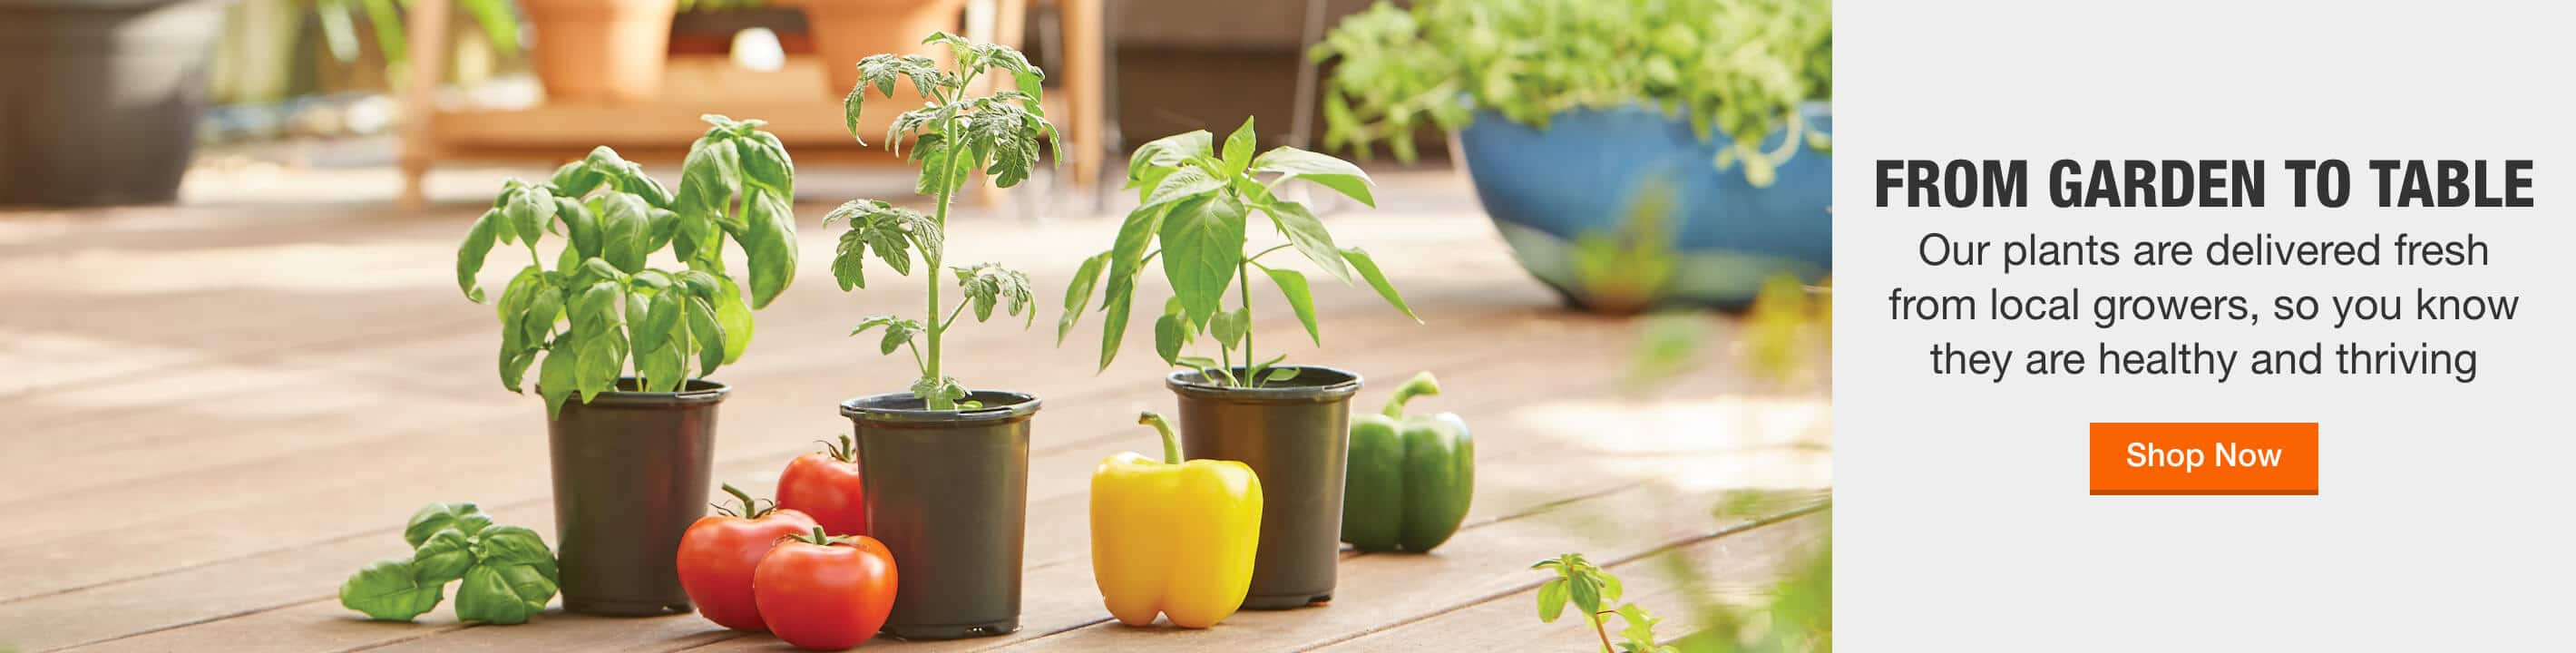 FROM GARDEN TO TABLE Our plants are delivered fresh from local growers, so you know they are healthy and thriving. Shop Now